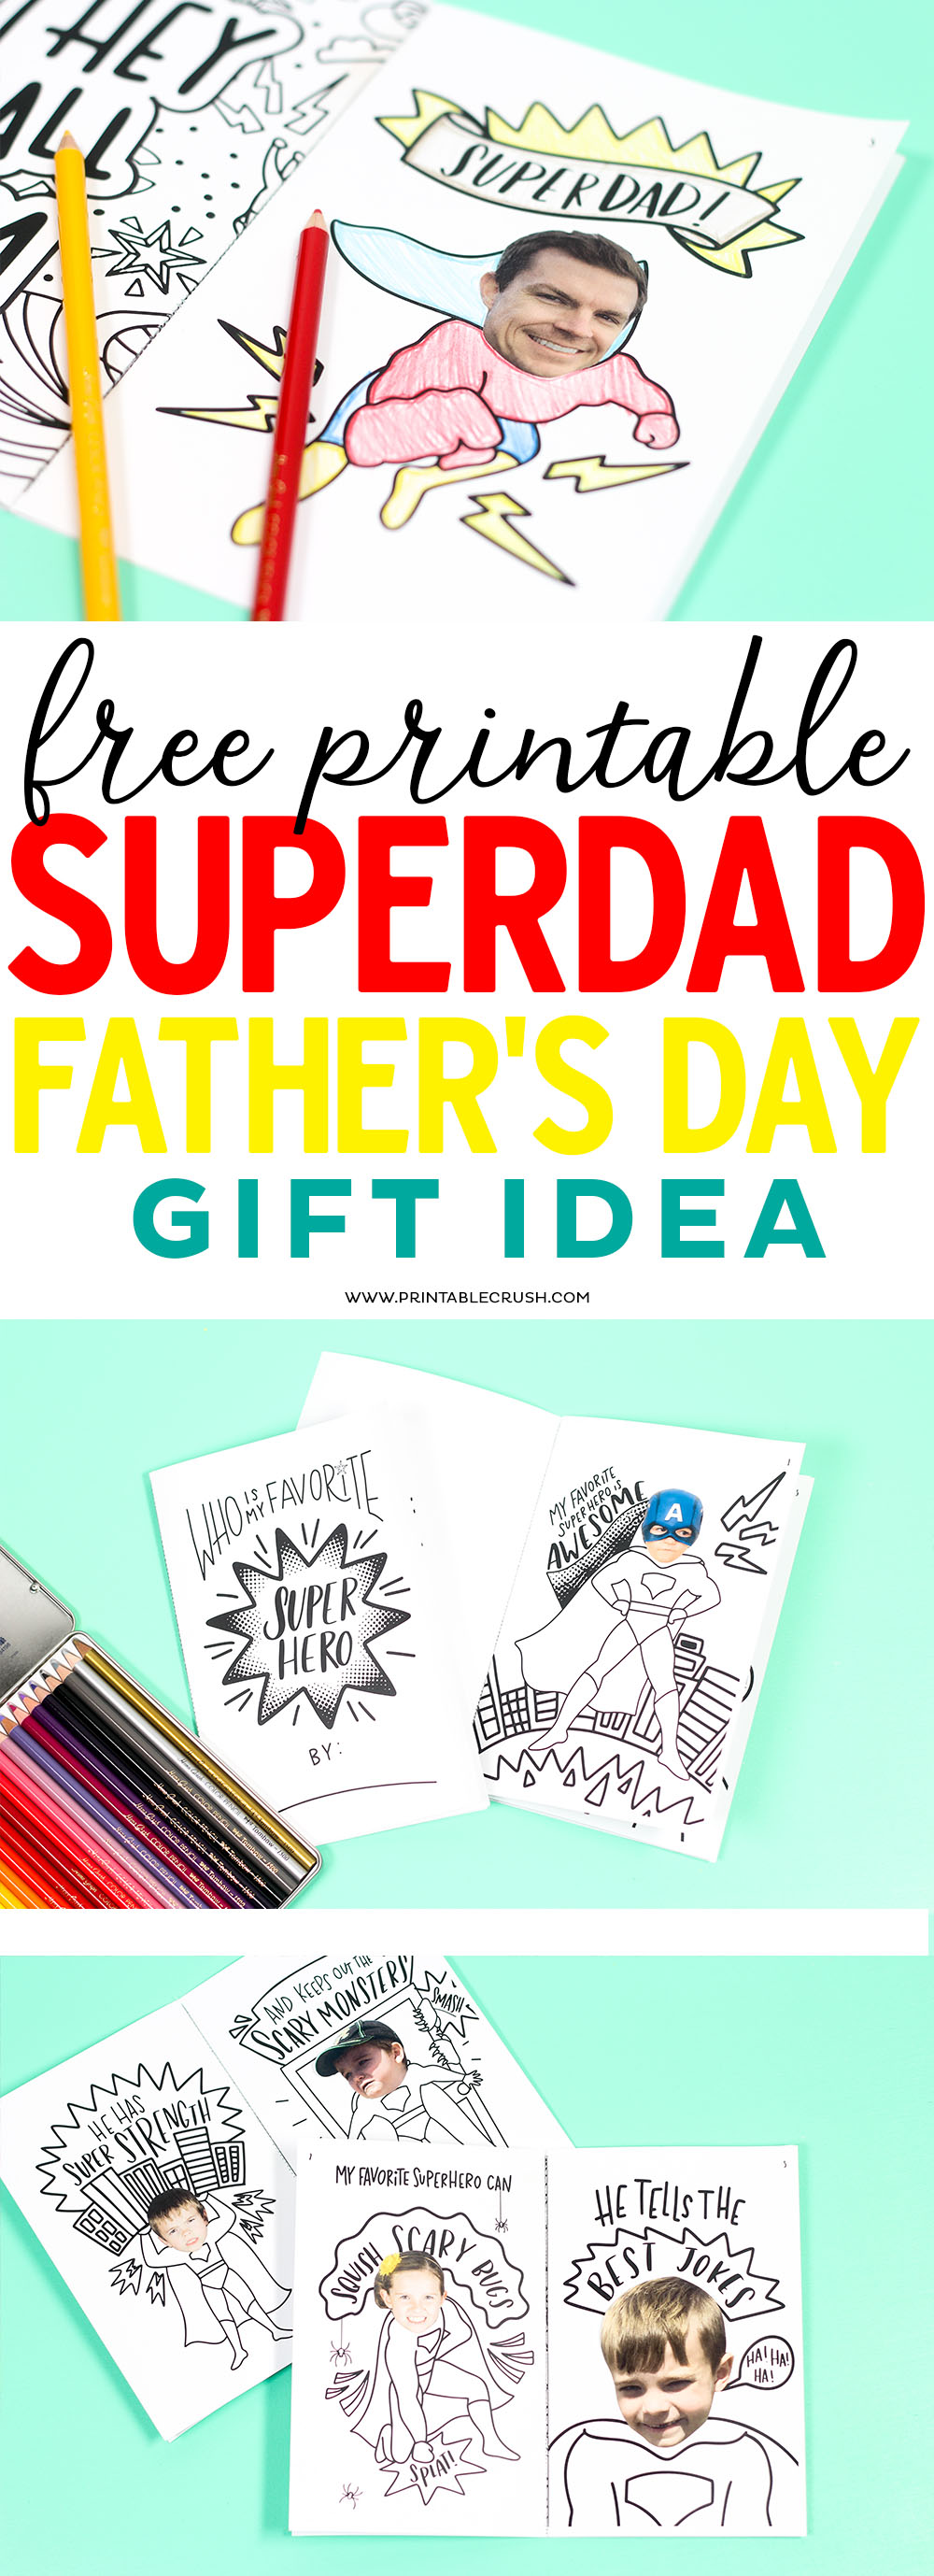 This free printable SUPERDAD father's day gift idea is a fun kids activity. Includes 8 fun coloring pages you can personalize with your own family pictures! #freeprintable #fathersday #coloringbook via @printablecrush